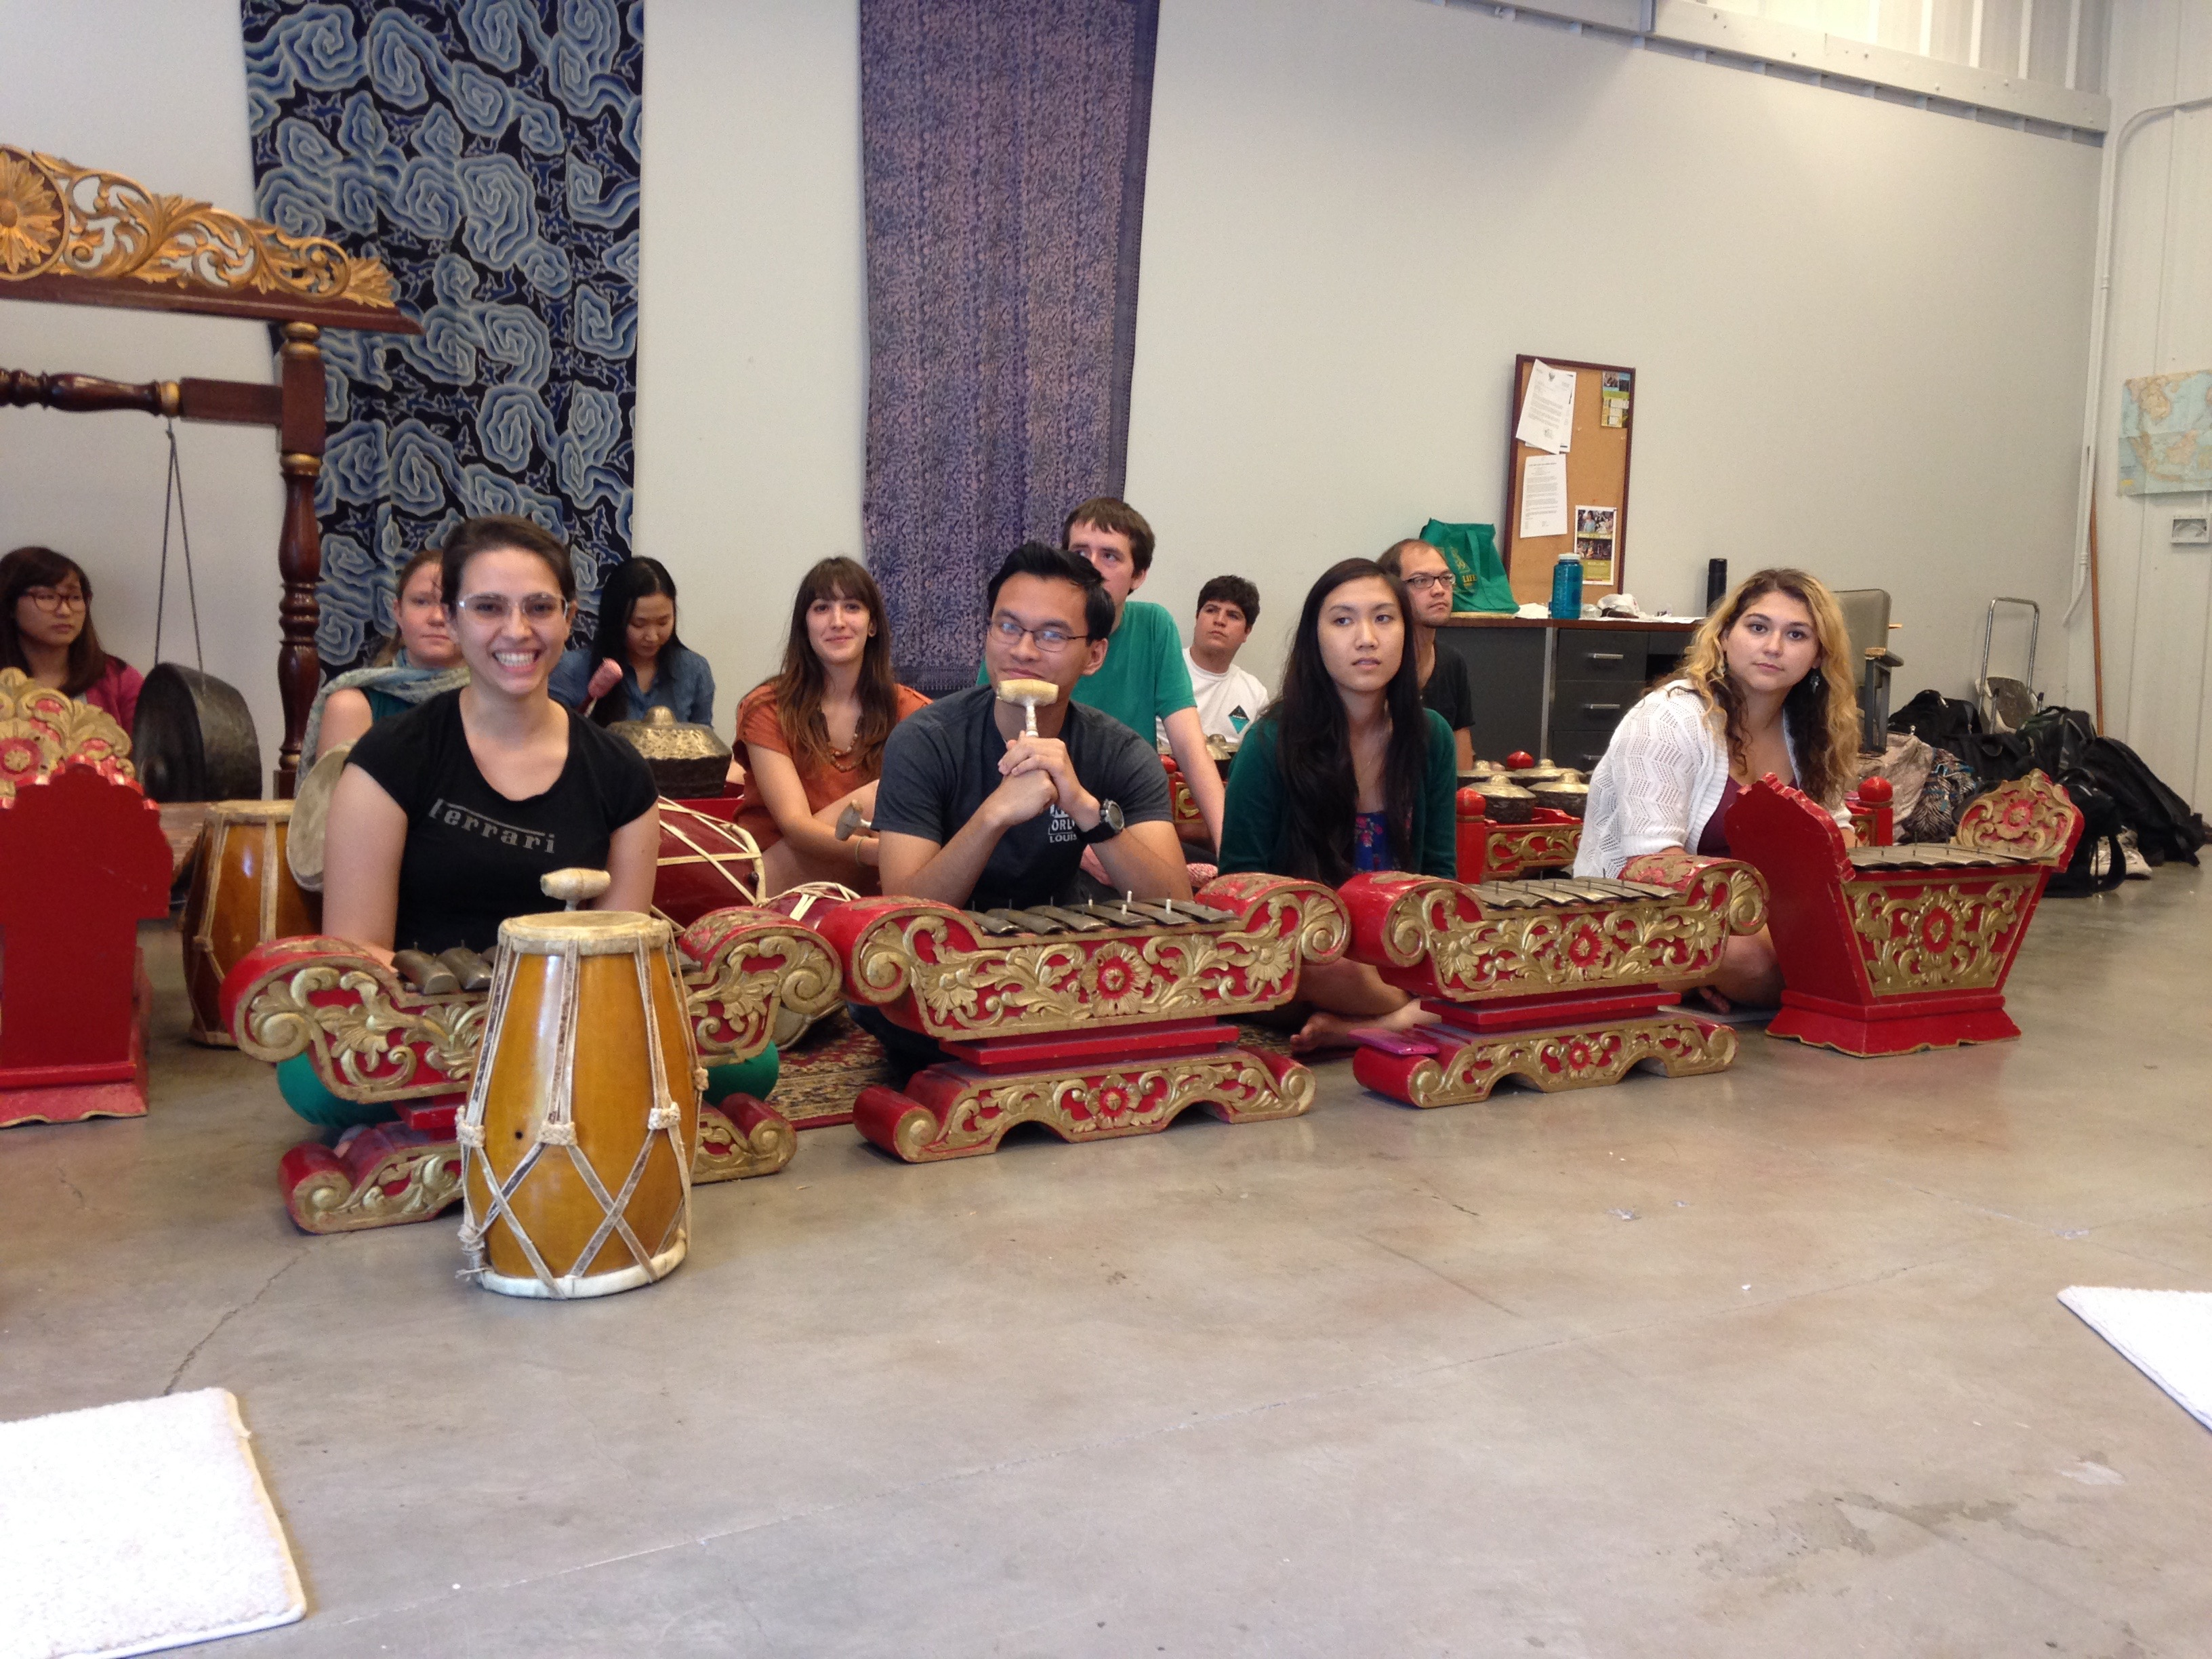 Performing Gamelan. Gillian Irwin, 2015.